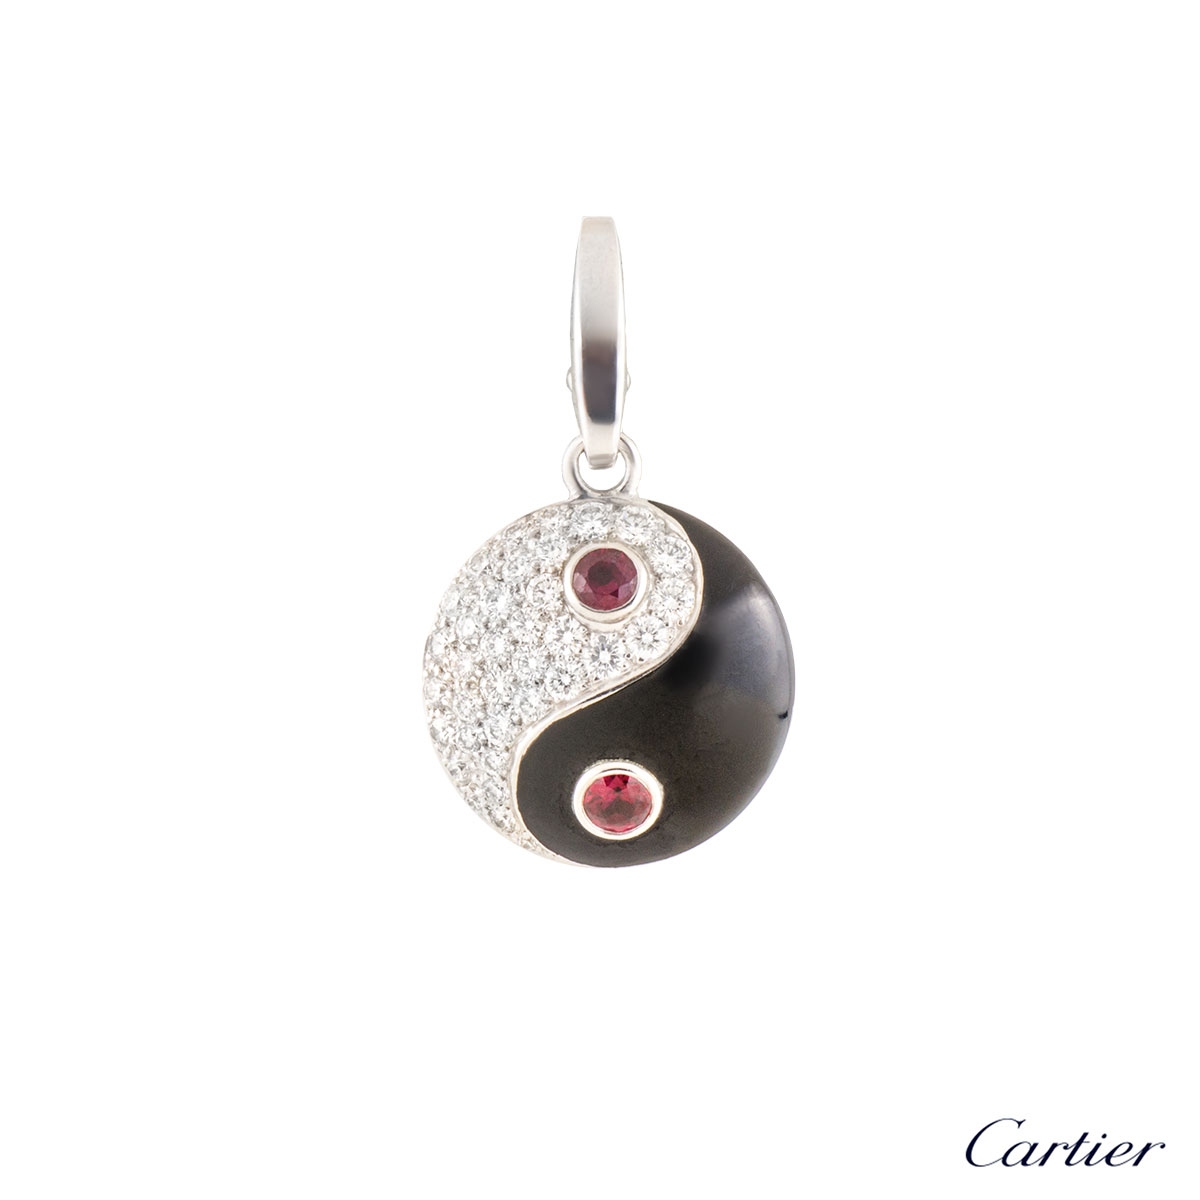 Cartier White Gold Diamond, Ruby and Enamel Yin Yang Charm N3015600